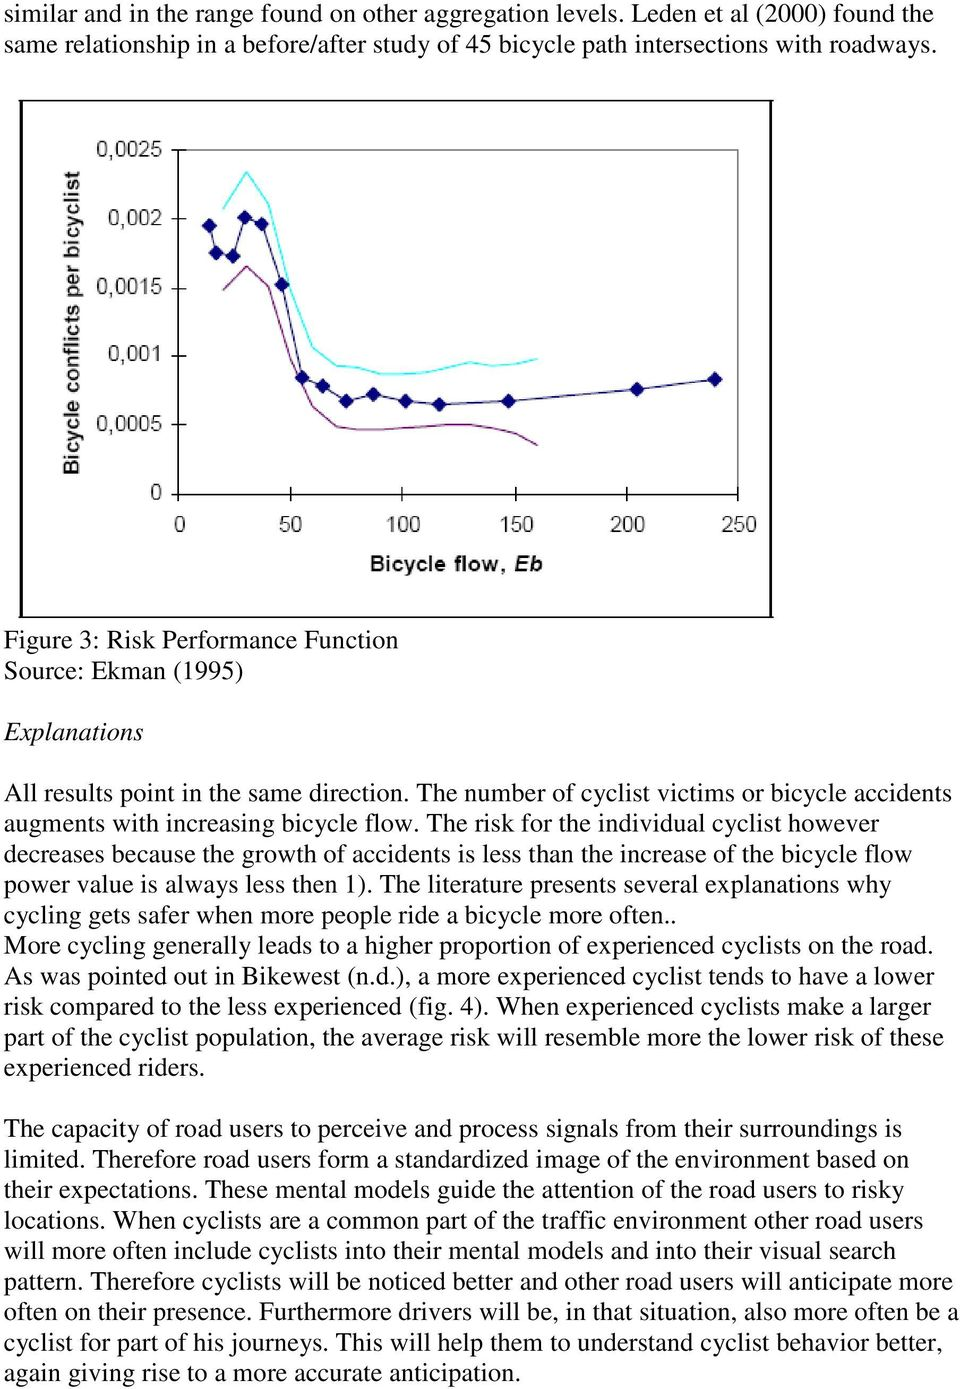 The risk for the individual cyclist however decreases because the growth of accidents is less than the increase of the bicycle flow power value is always less then 1).